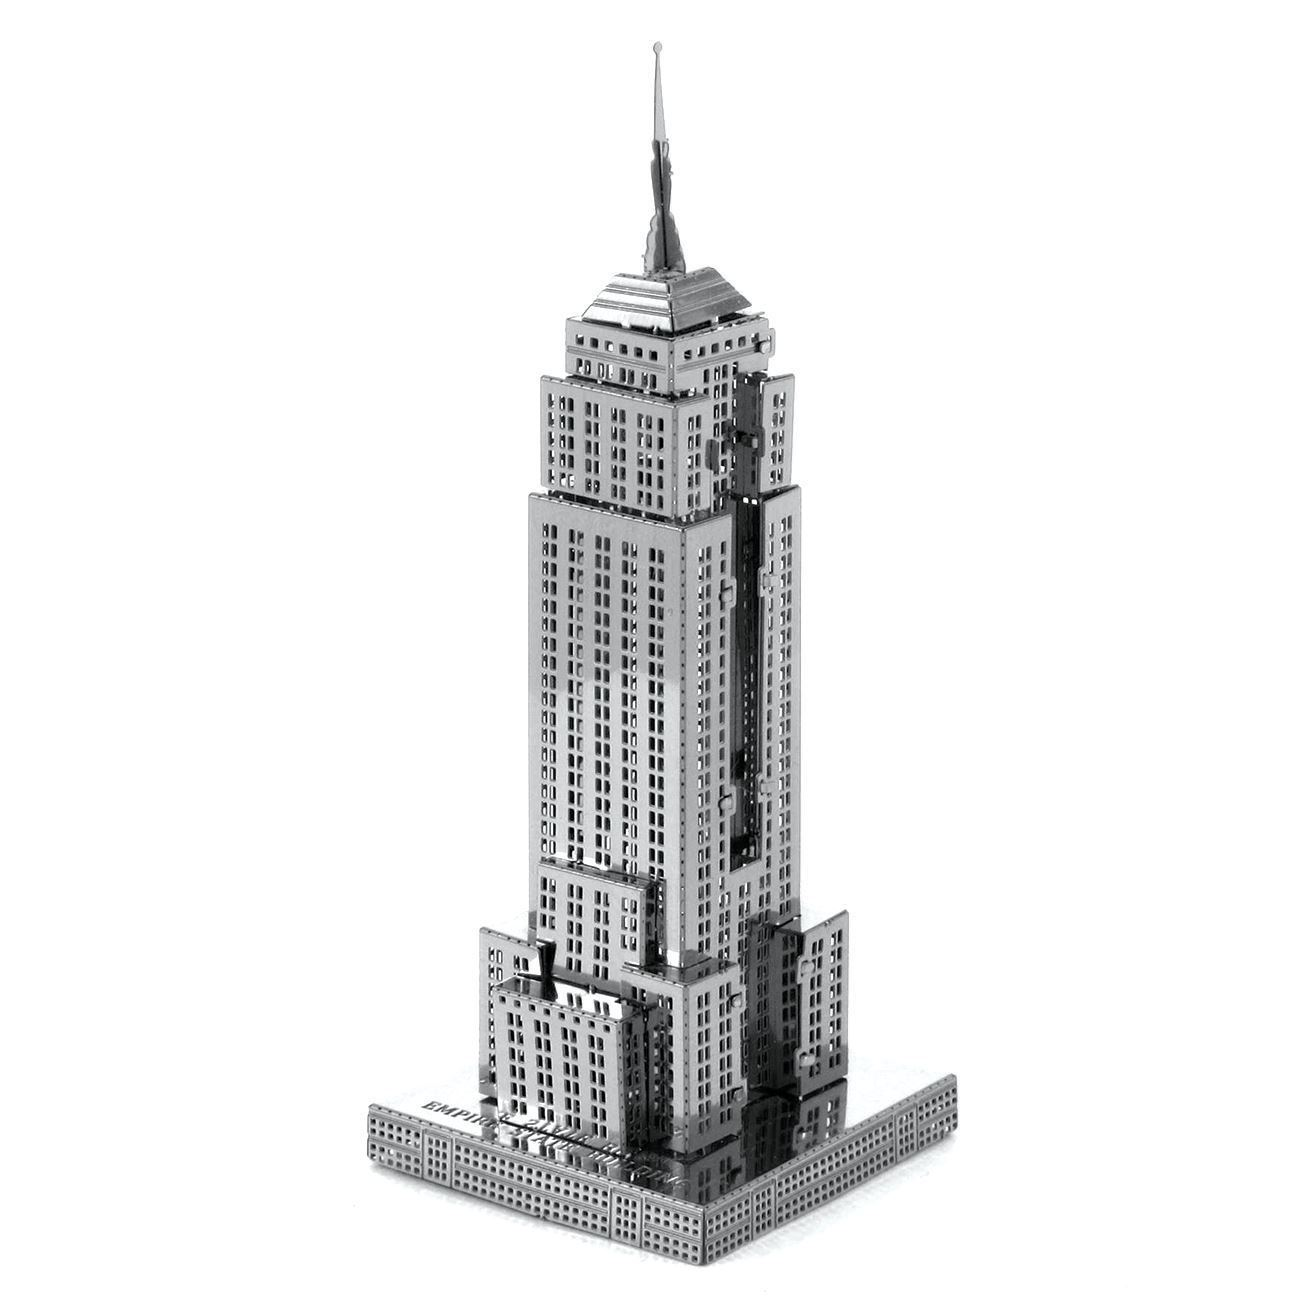 metal earth diy 3d metal model kits metal earth architecture empire state building. Black Bedroom Furniture Sets. Home Design Ideas